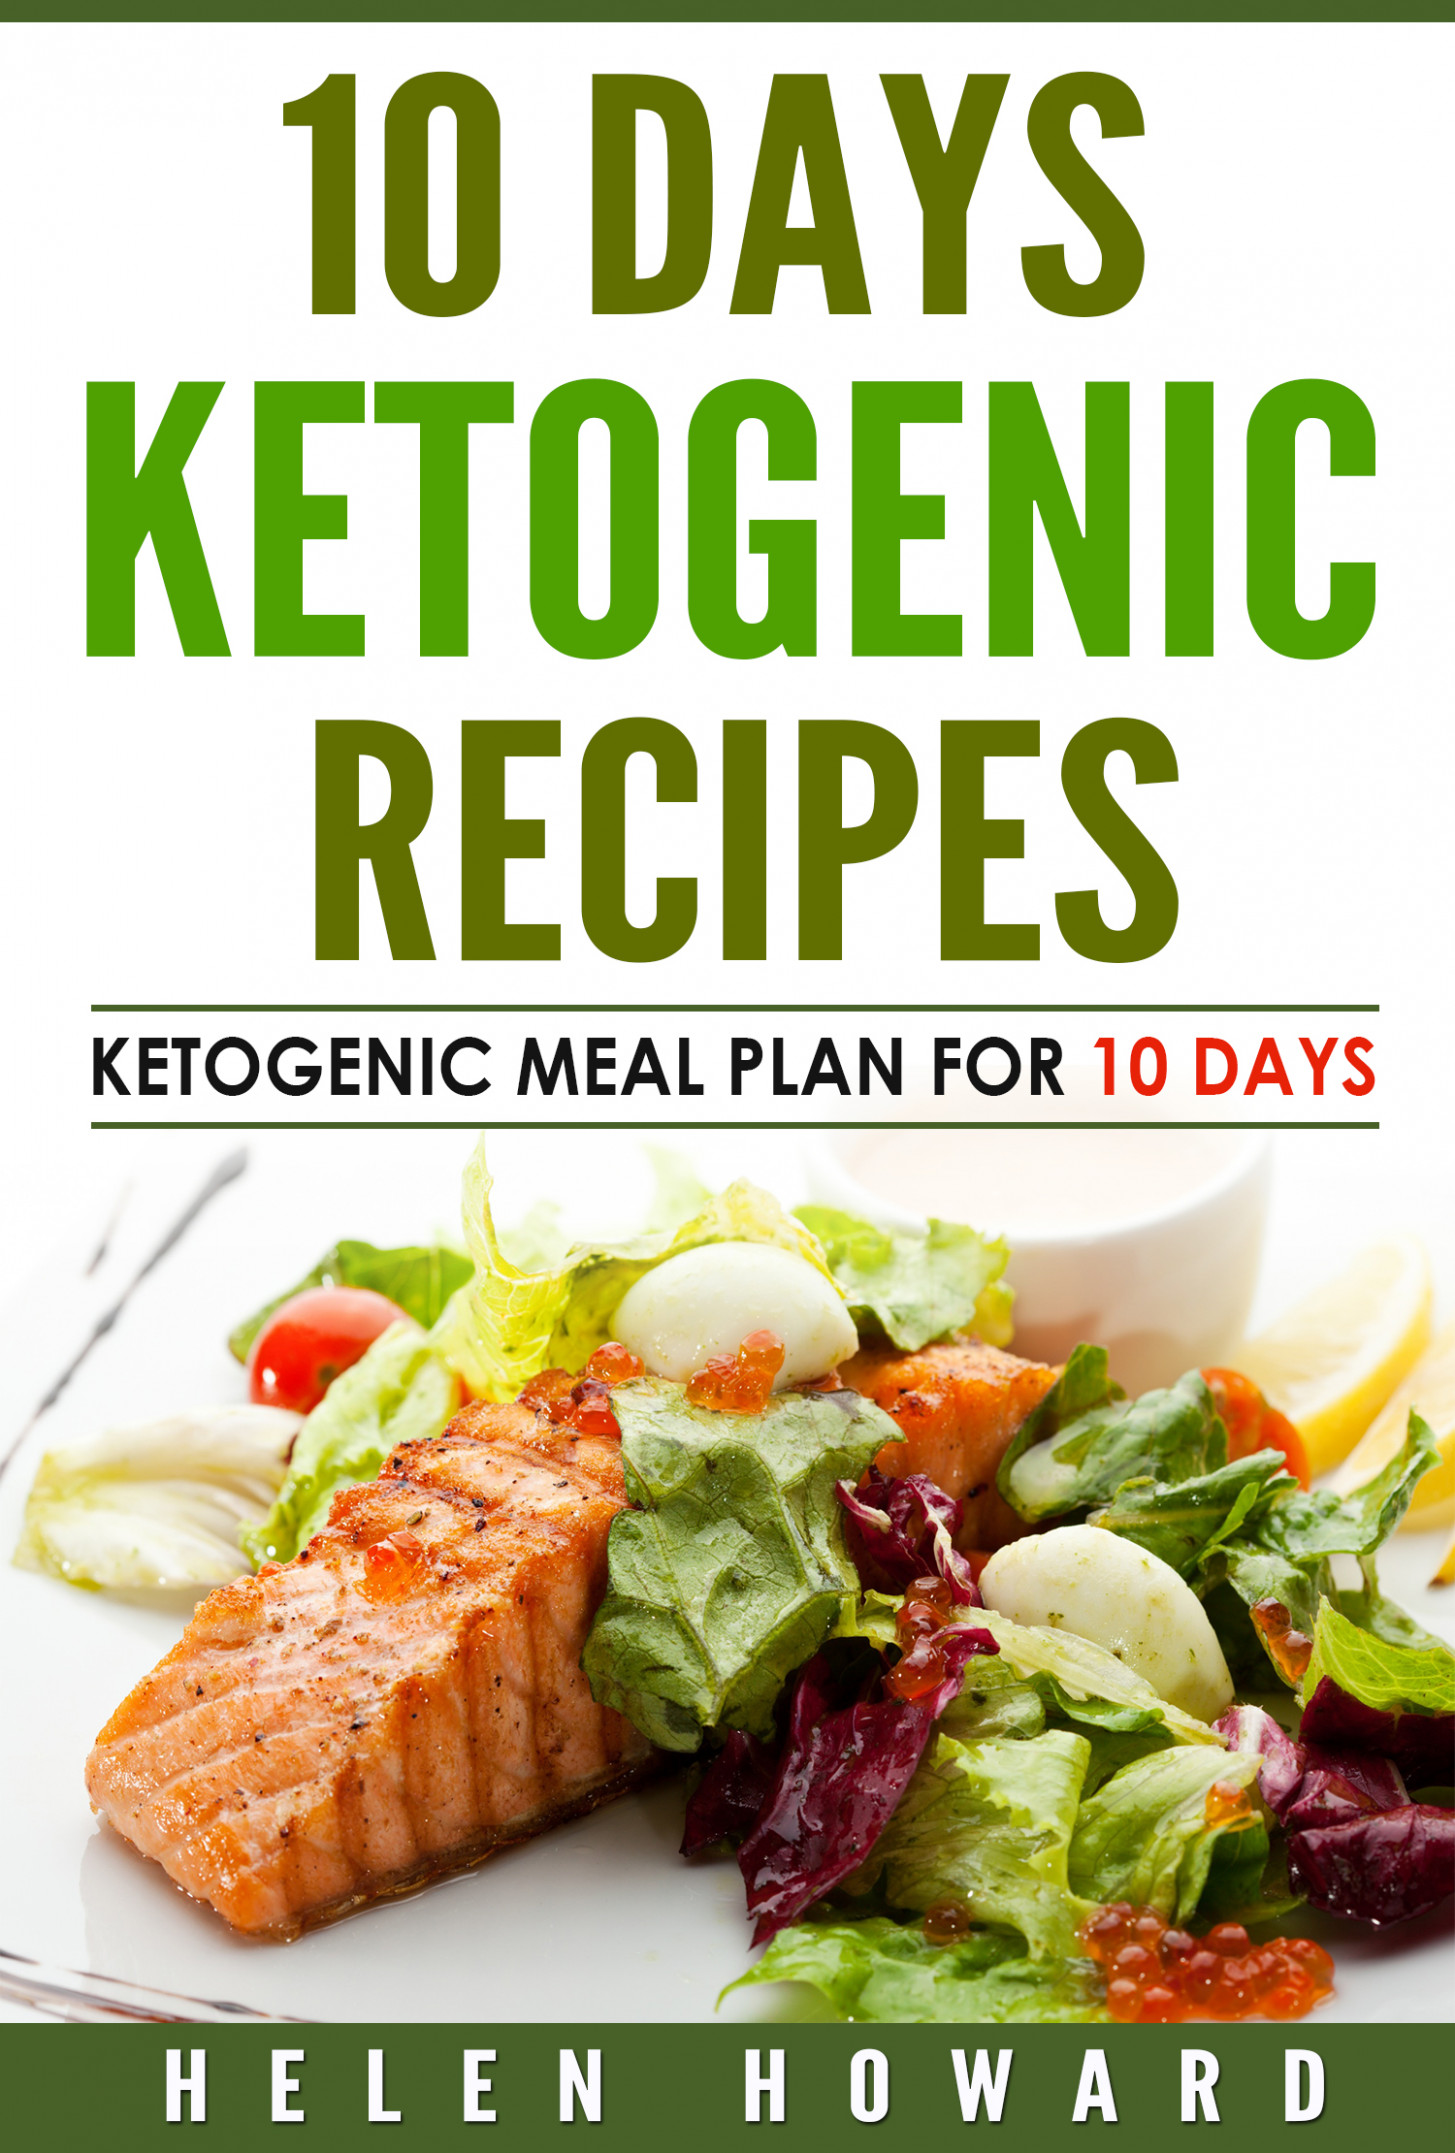 13 Days Ketogenic Diet Recipes Meal Plan, an Ebook by Helen Howard - keto diet food recipes